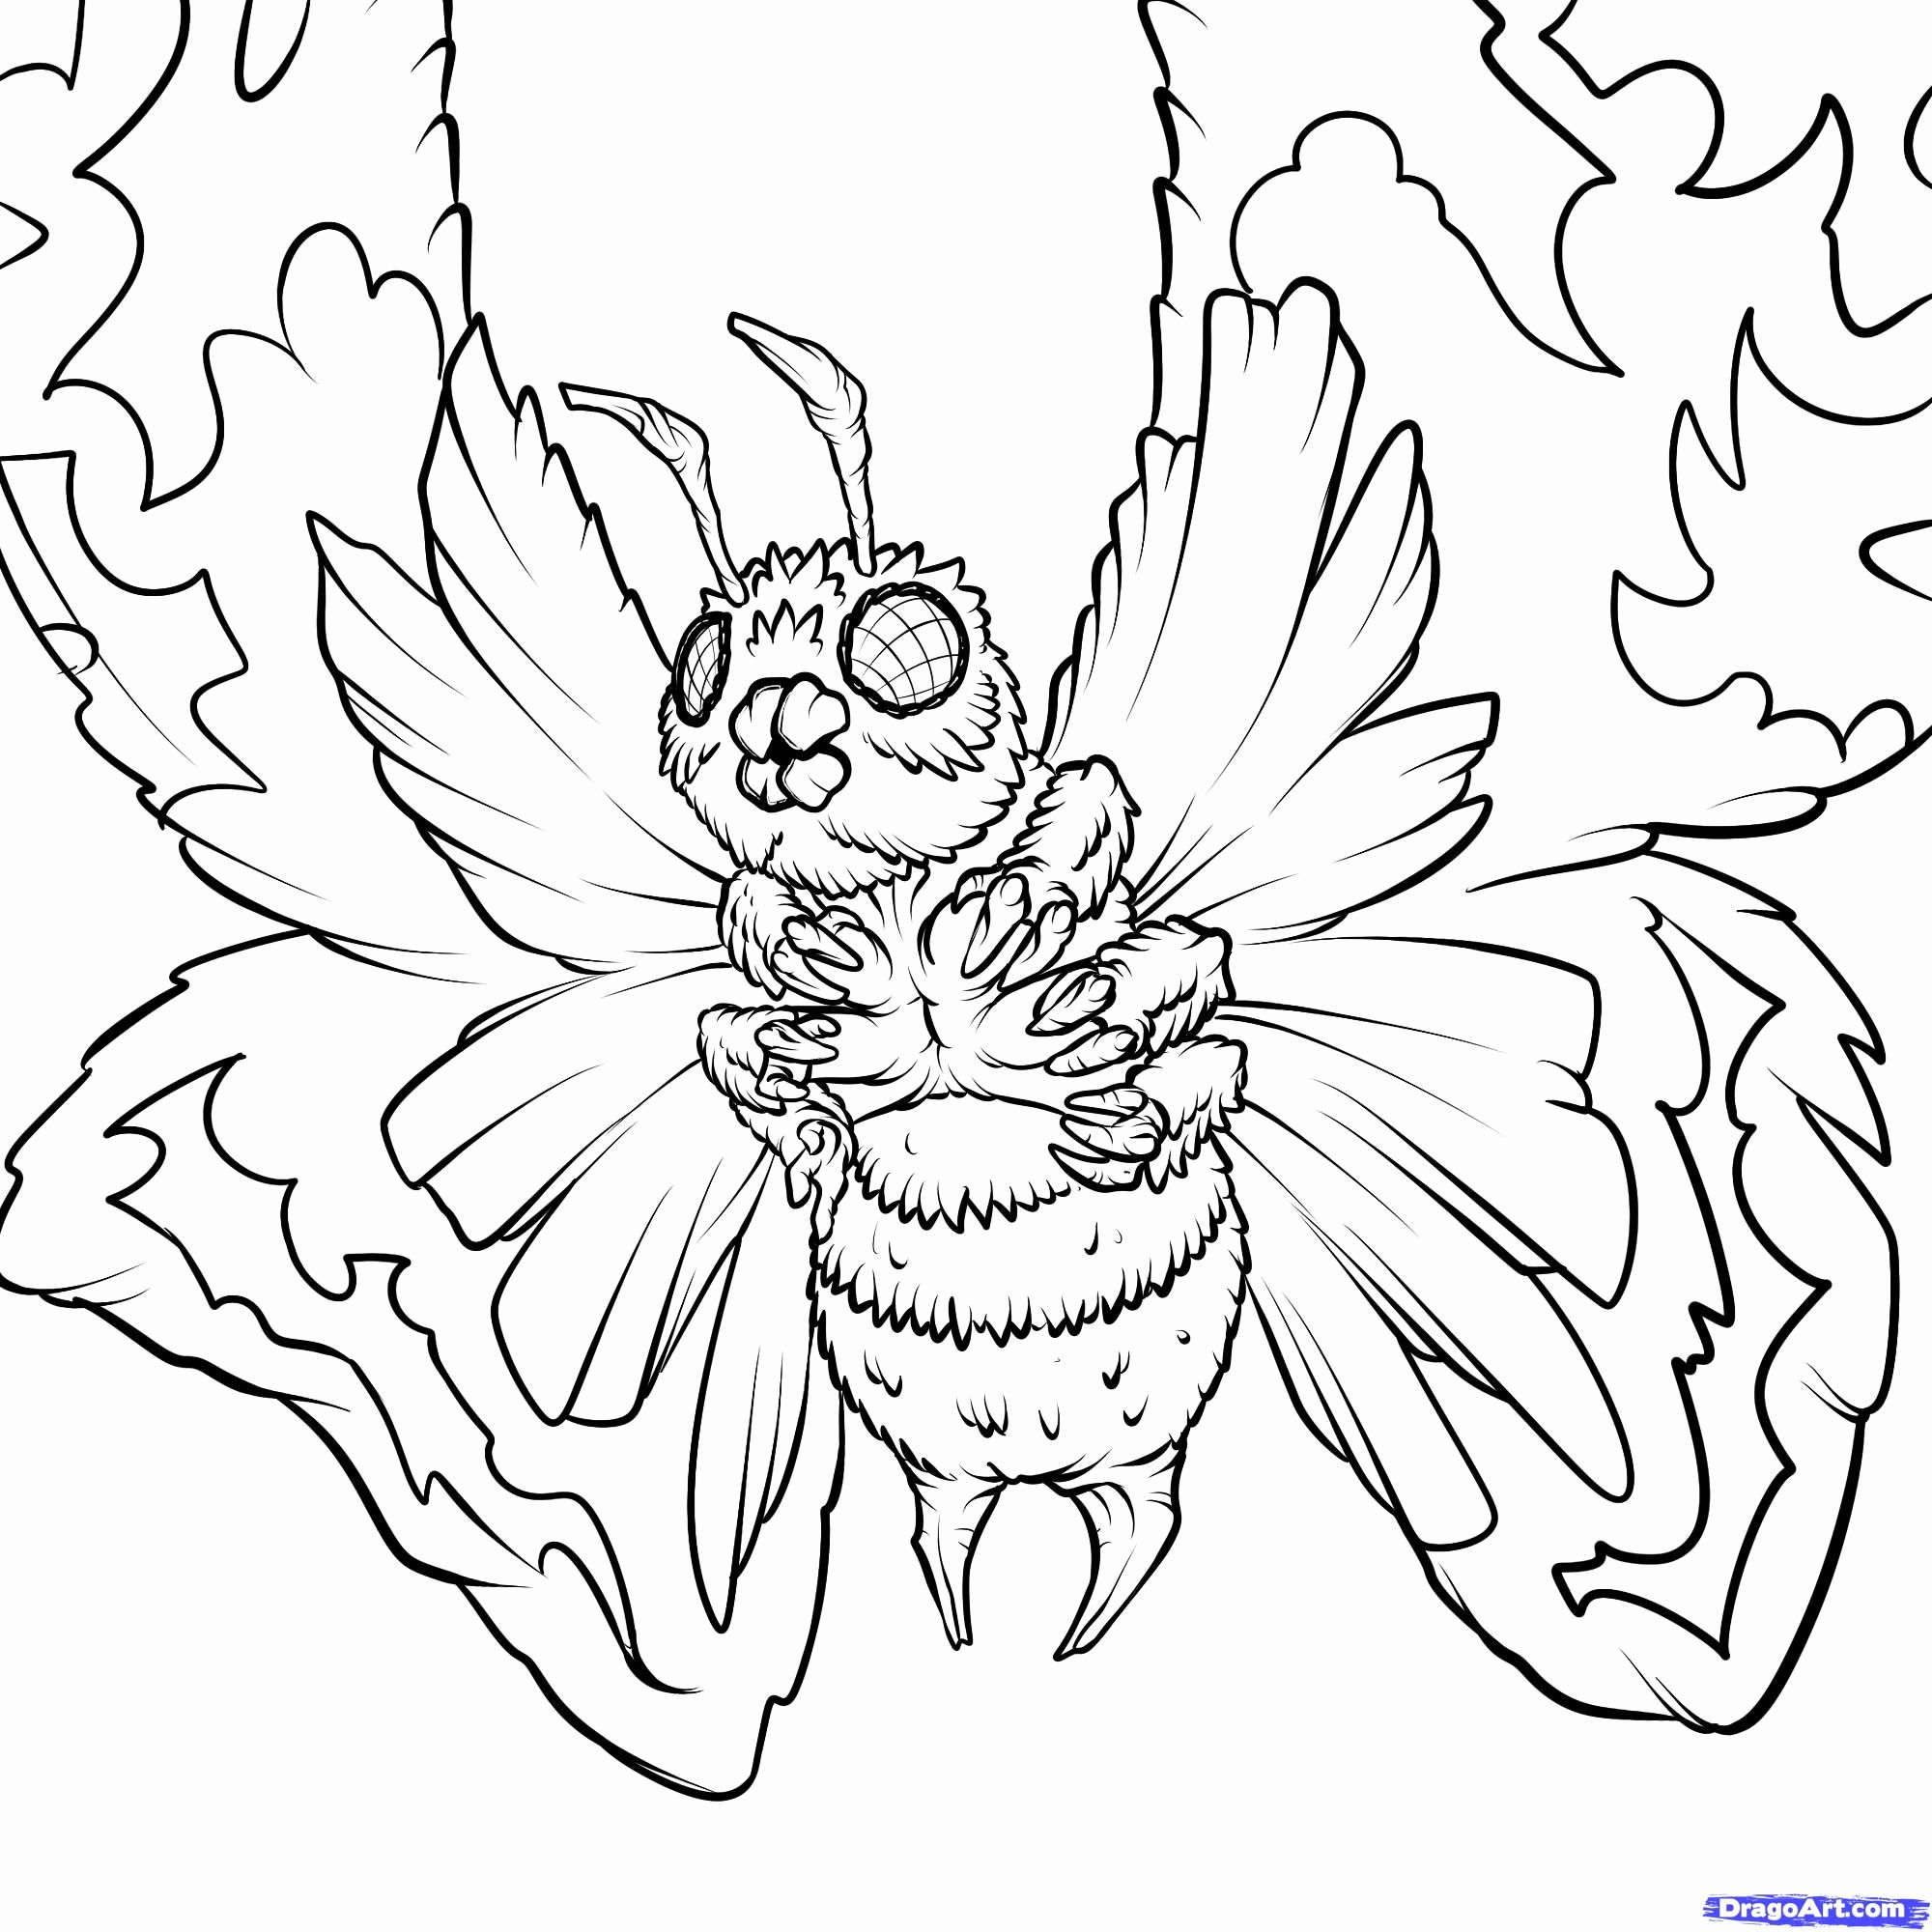 Space Coloring Sheets Pdf Best Of Printable Godzilla Coloring Pages Coloring Home Space Coloring Pages Monster Coloring Pages Dinosaur Coloring Pages [ 2000 x 2000 Pixel ]